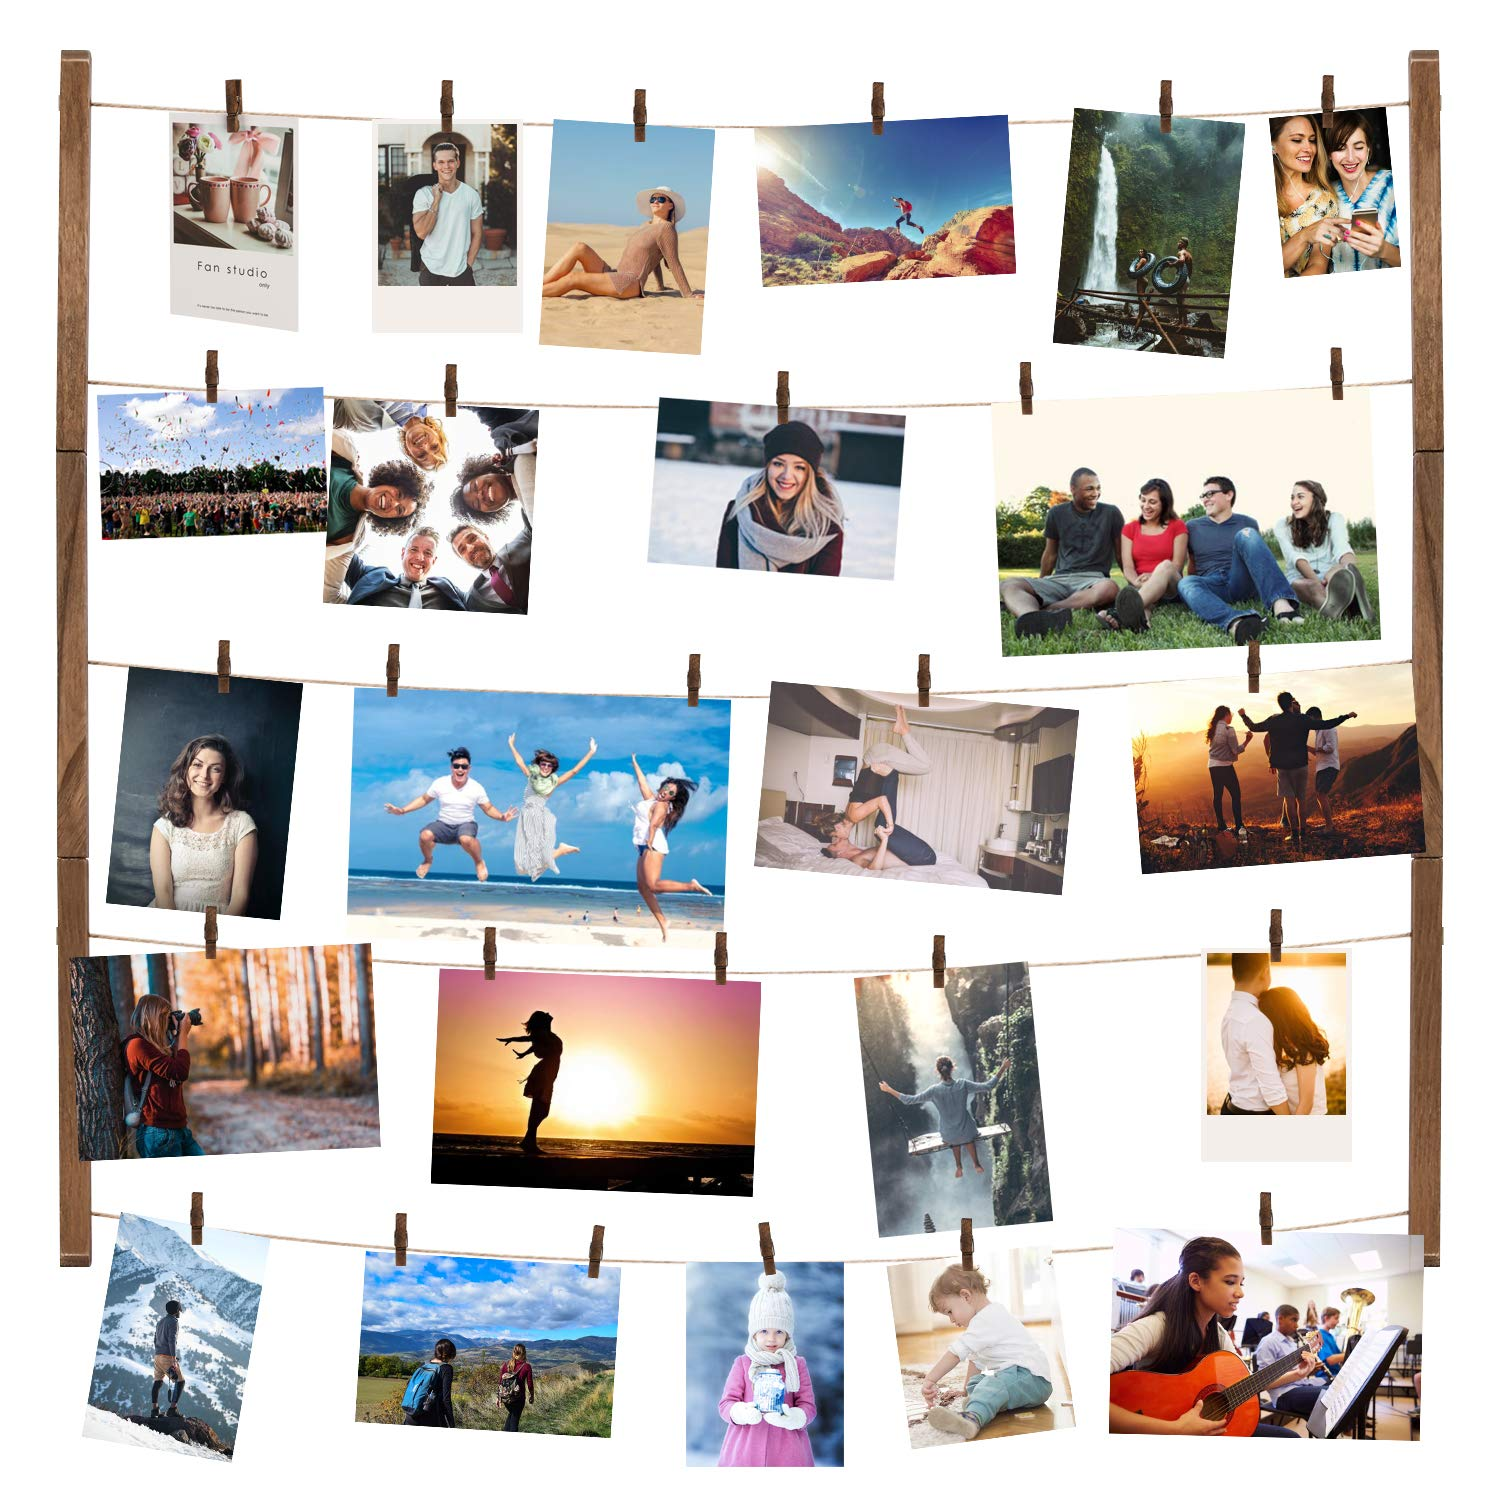 ONE WALL DIY Hanging Photo Display, 26x28 inch Rustic Wood Picture Frames Collage Set Includes Hanging Twine Cords, 50 Clothespins& Wall Mounts for Hanging Photos, Prints & Artwork by ONE WALL